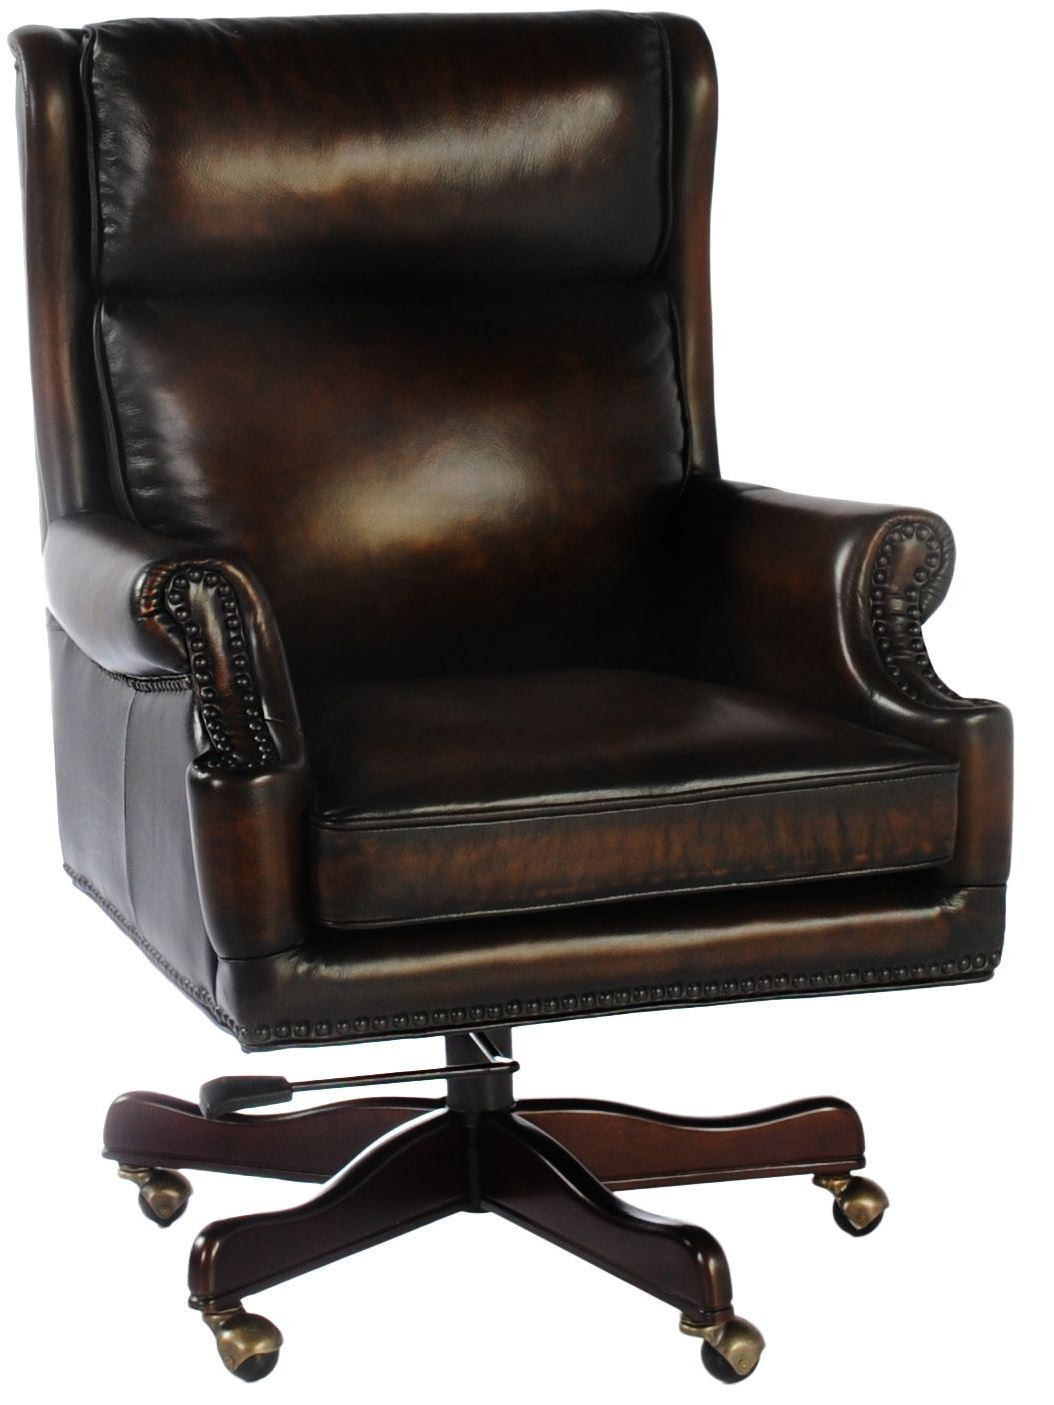 Tan Office Chair Clinton Black And Tan Leather Office Chair From Lazzaro Wh